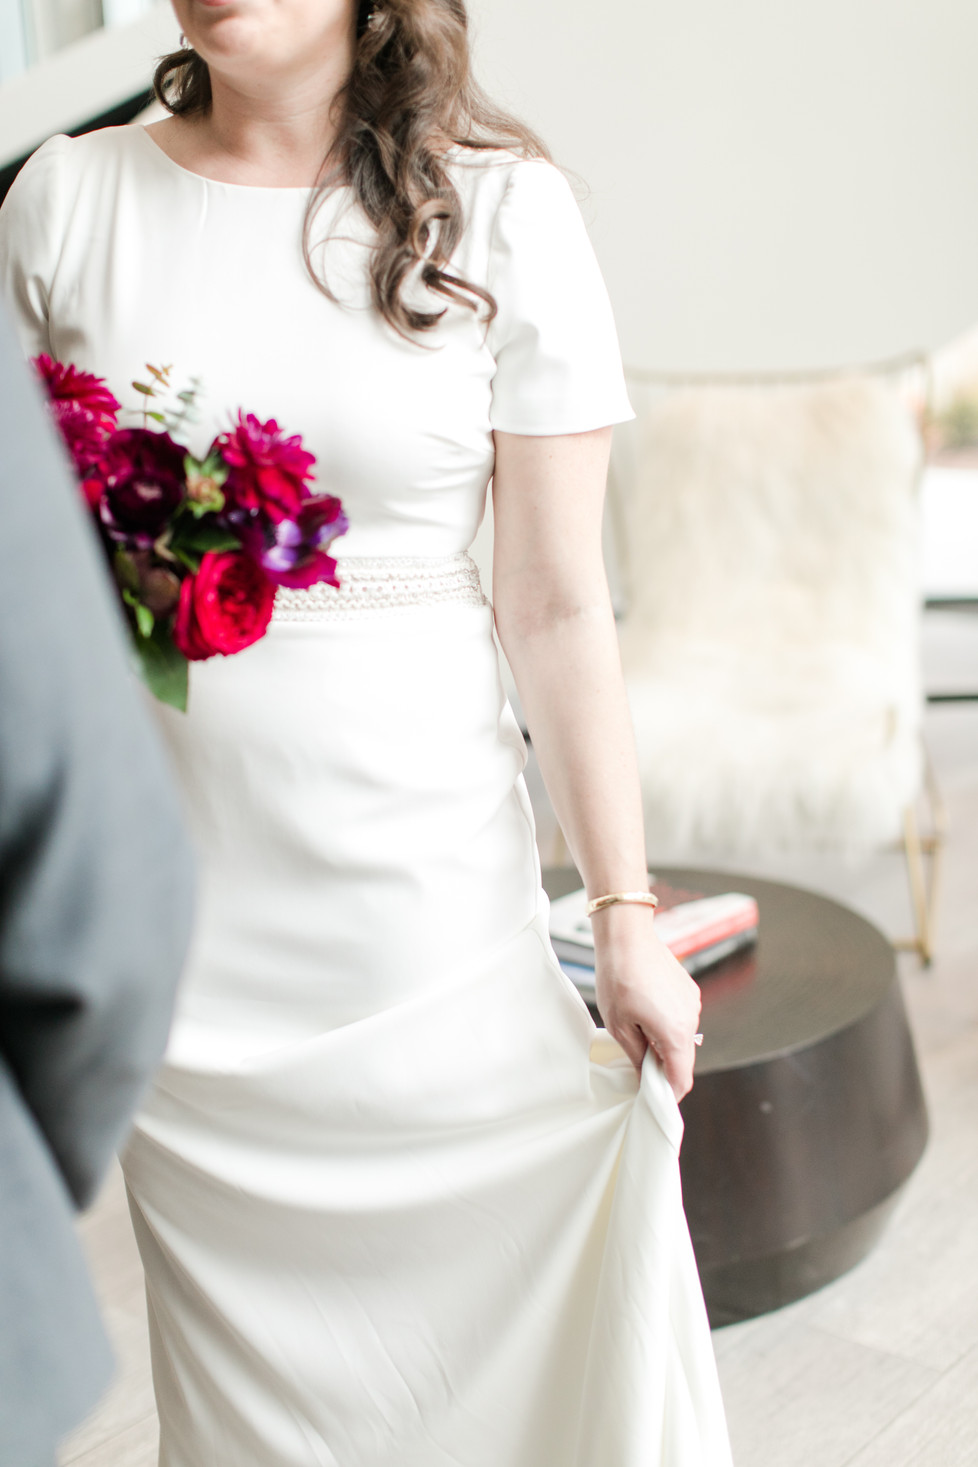 Downtown Denver Intimate Wedding